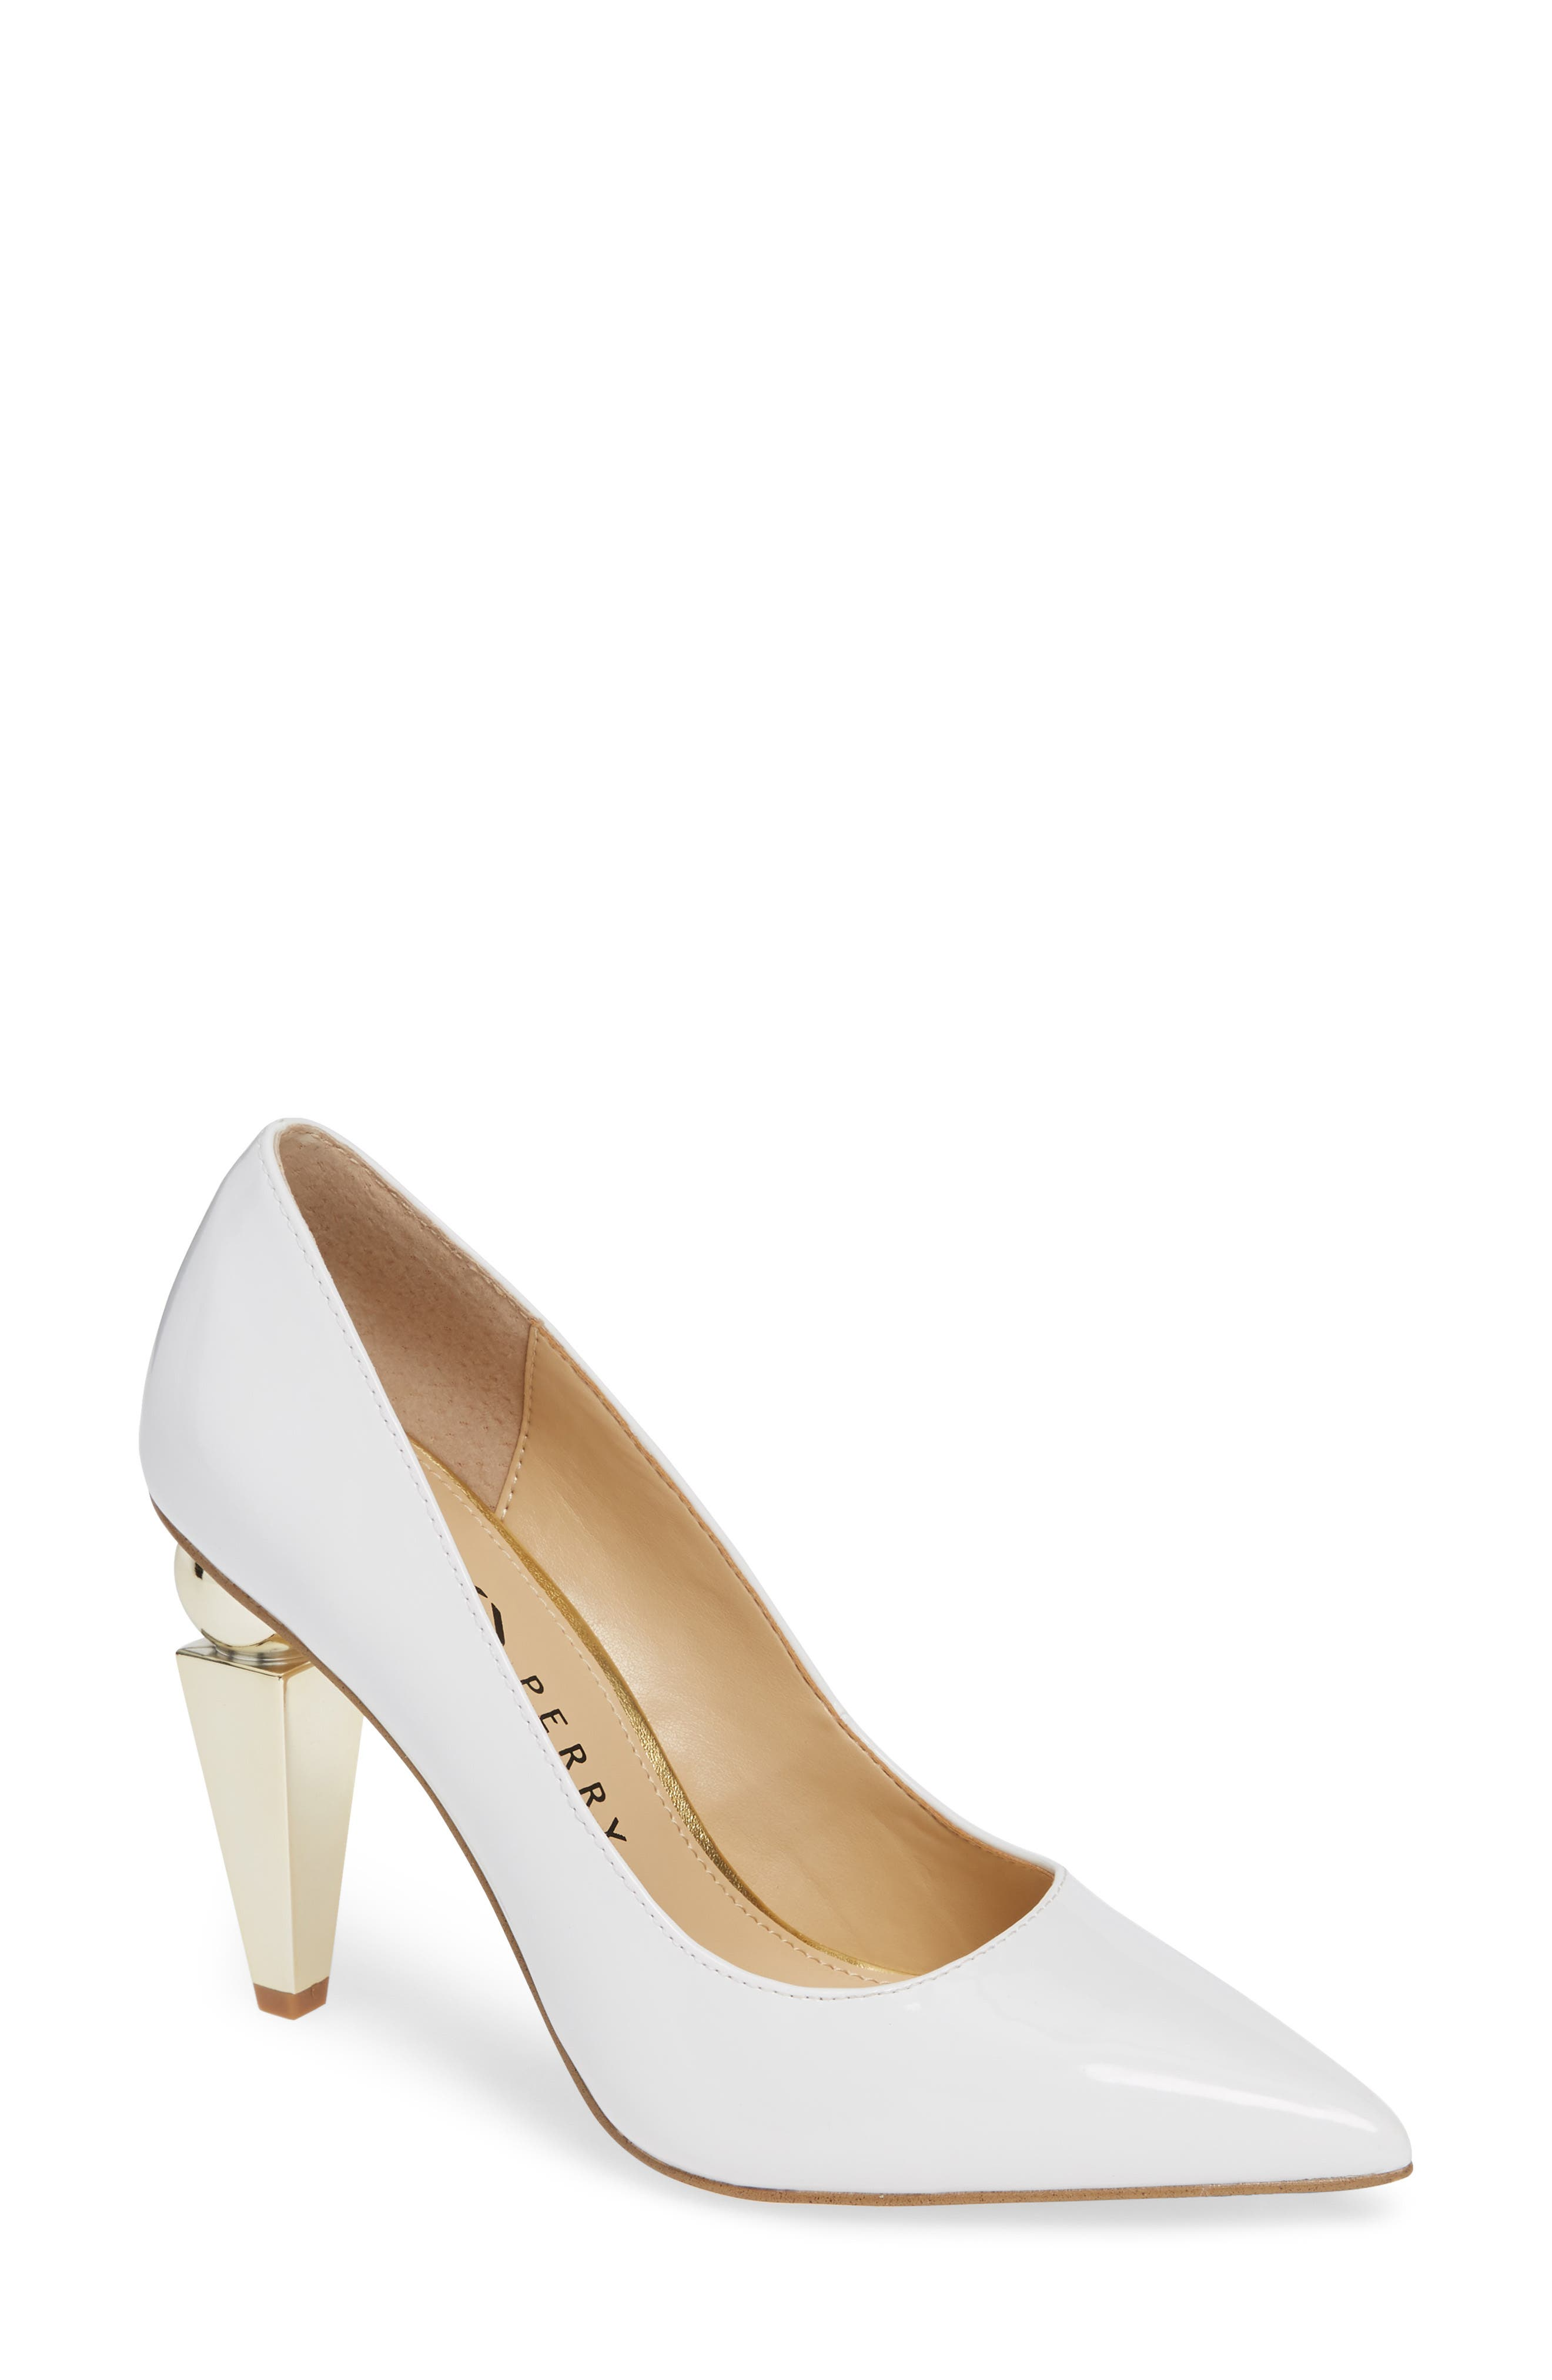 KATY PERRY THE MEMPHIS PUMP